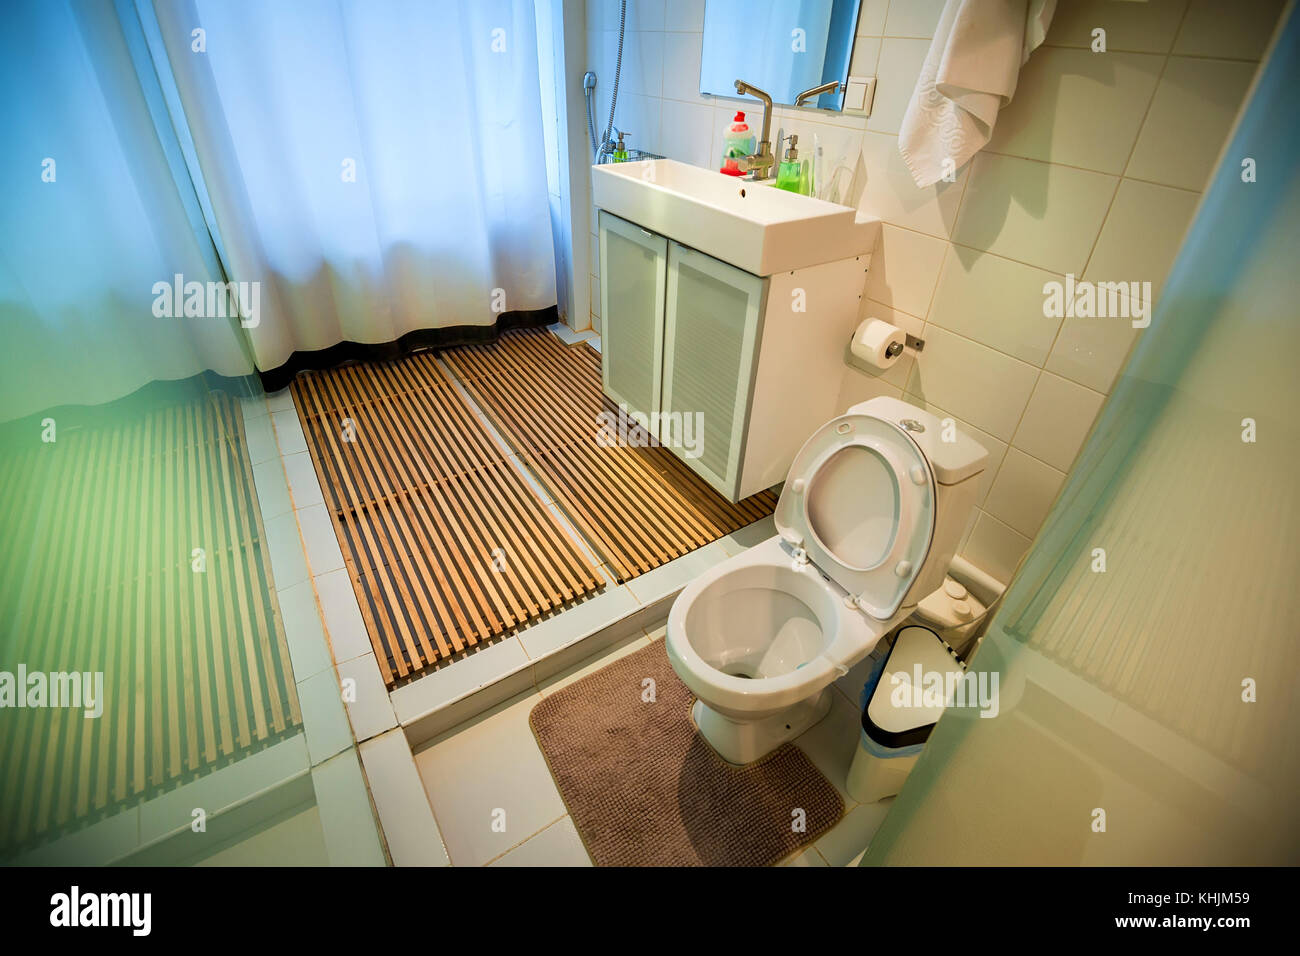 Modern bathroom interior with toilet and shower Stock Photo